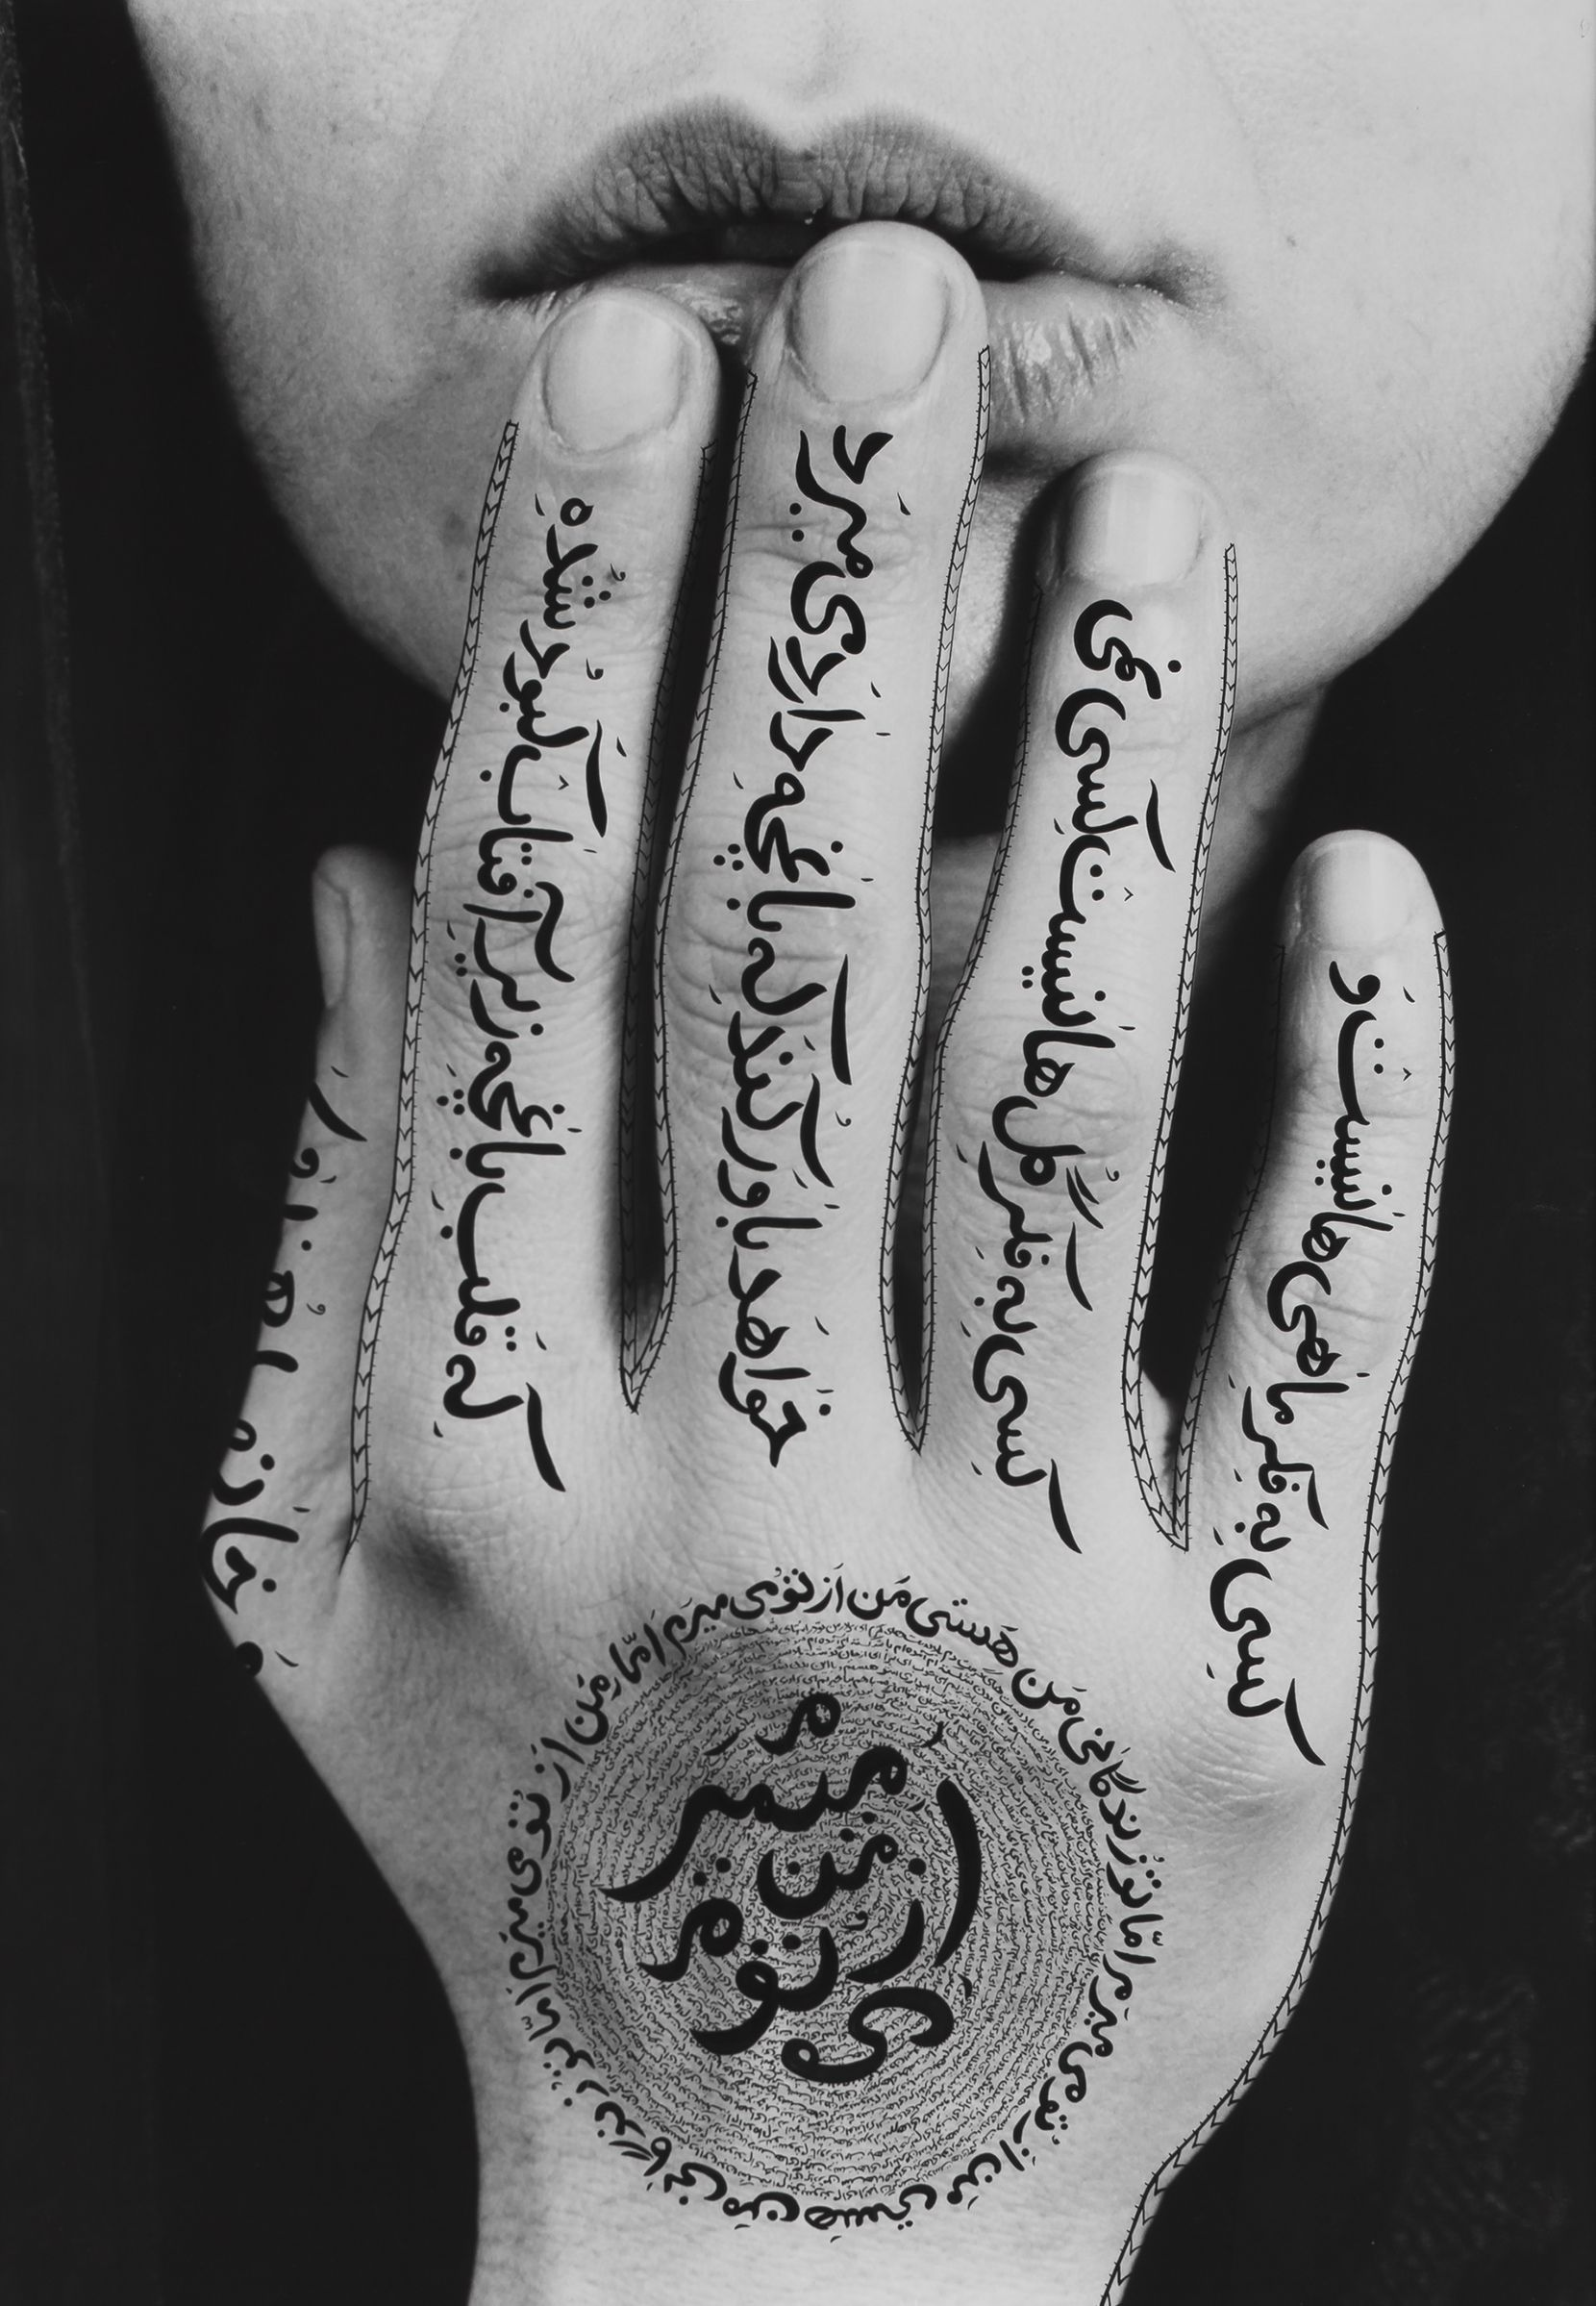 Shirin Neshat's 1996 work 'Untitled (Women of Allah)' is part of the artist's first photographic series. The series also introduced the artist's use of calligraphy.